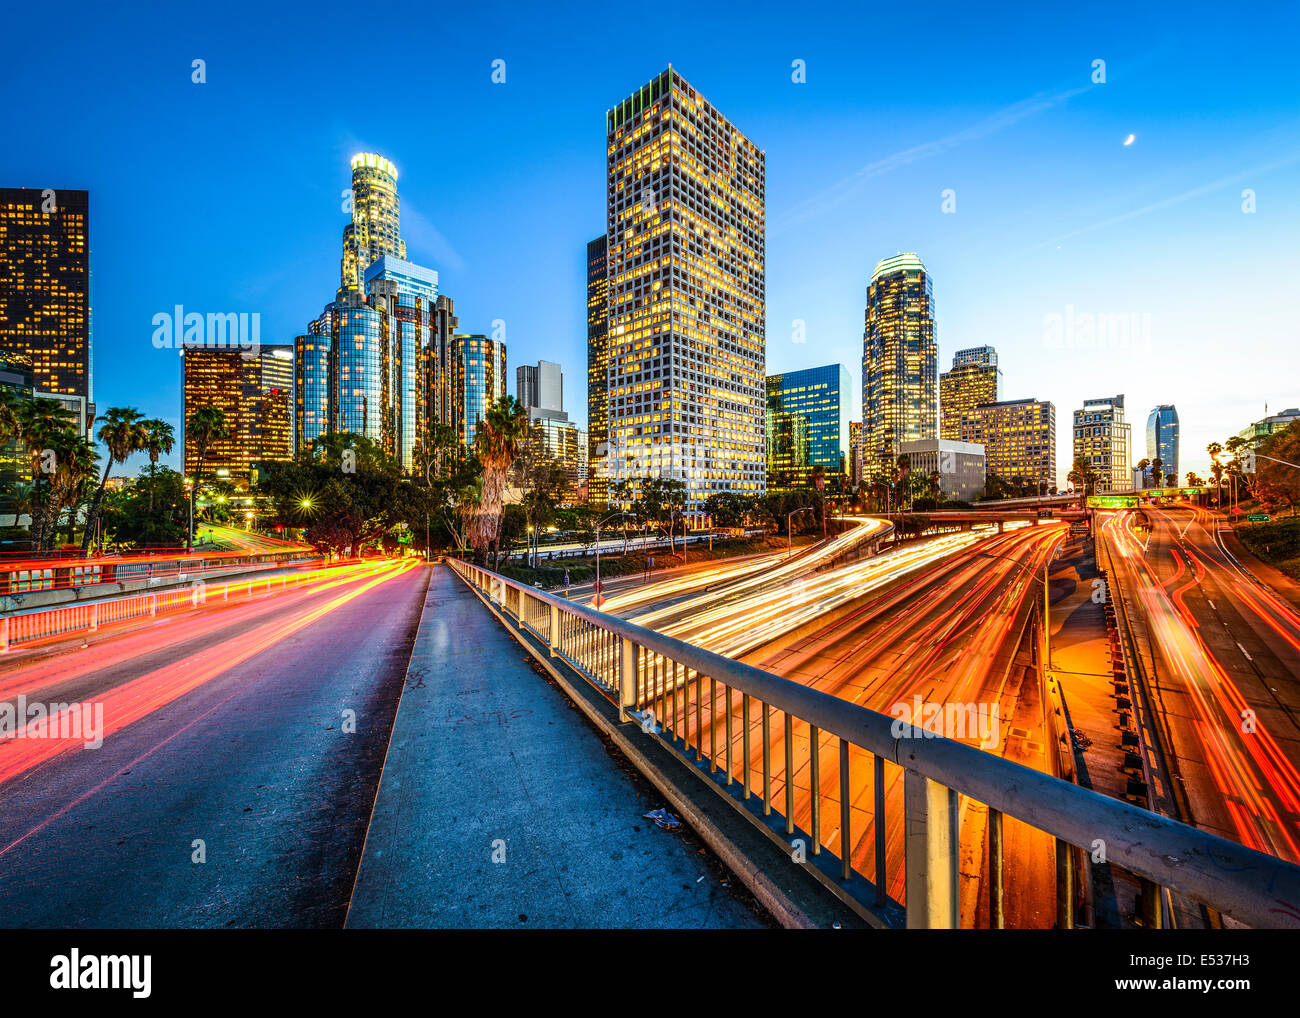 Los Angeles, Kalifornien, USA downtown Skyline bei Nacht. Stockfoto